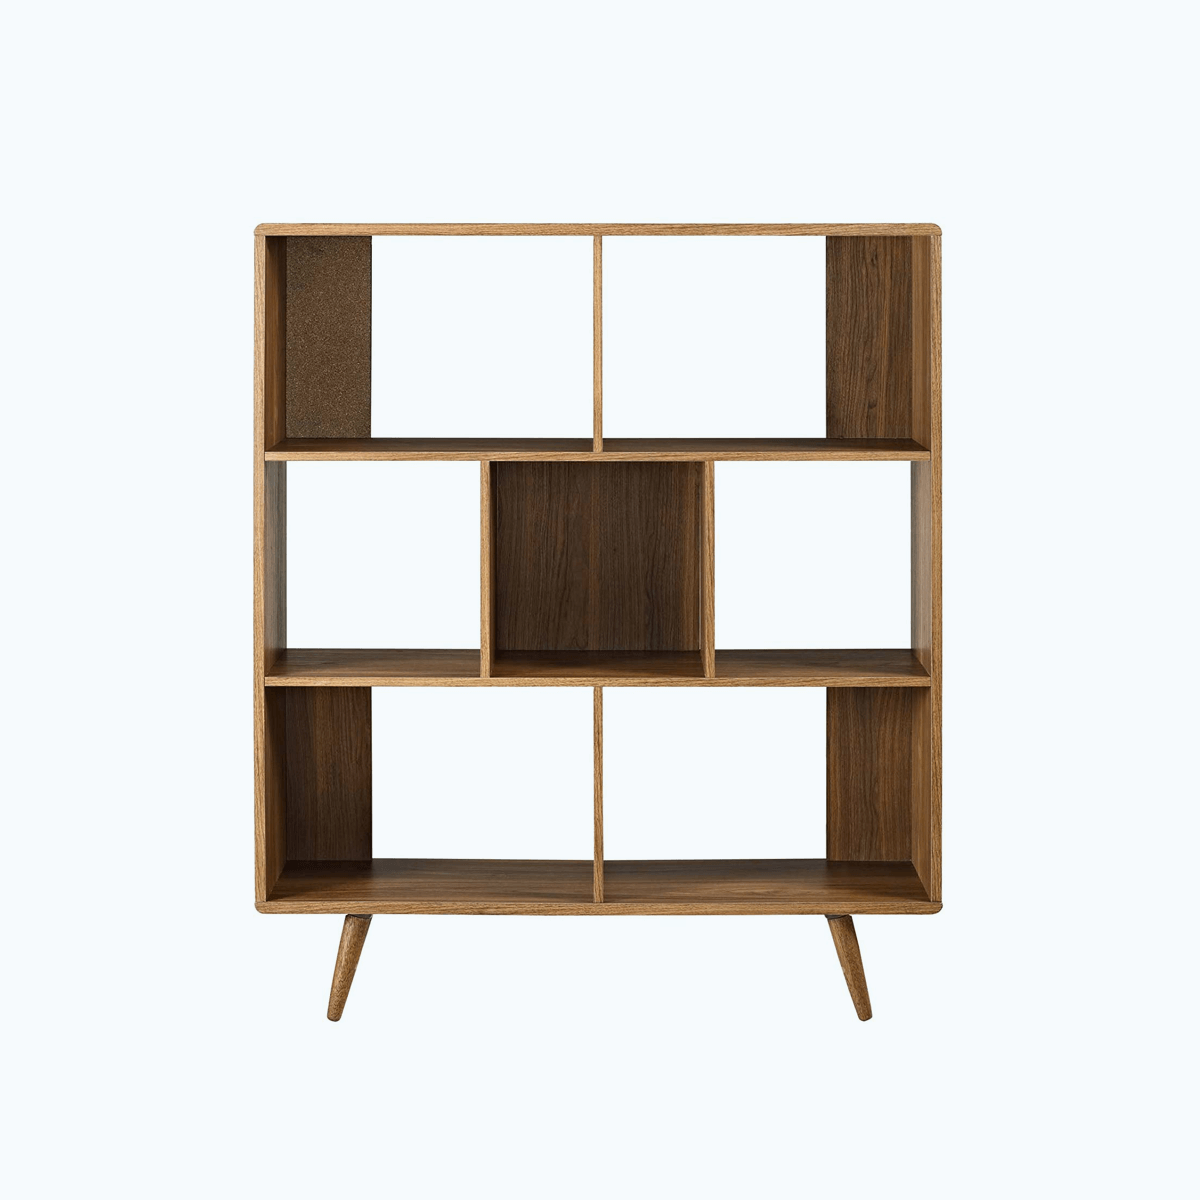 Offset Wood Bookcase Walnut Mid Century Modern Decor Midmod